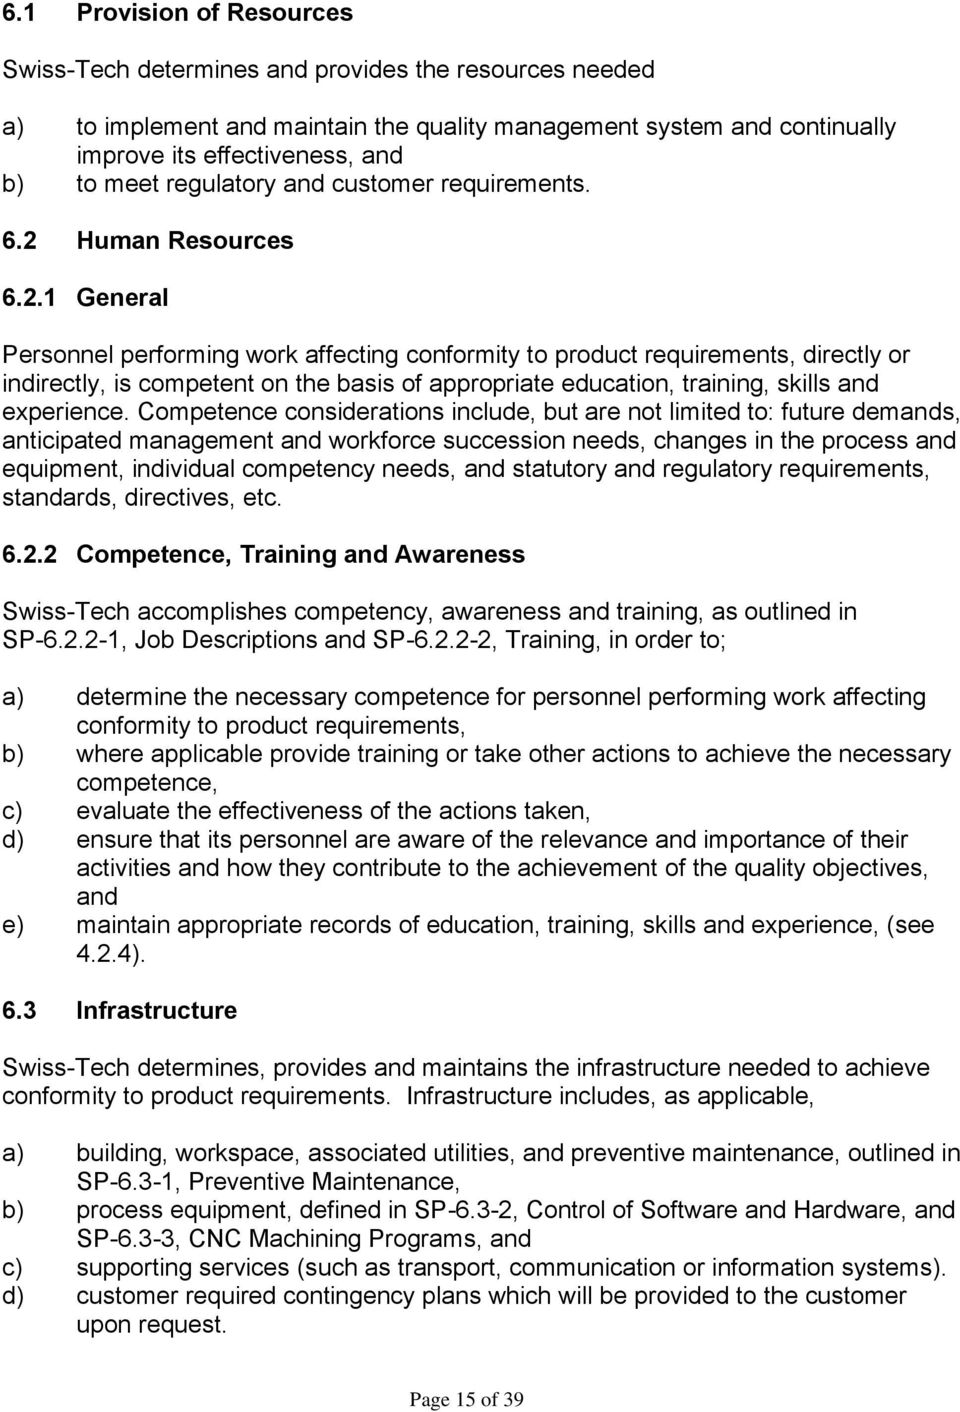 Human Resources 6.2.